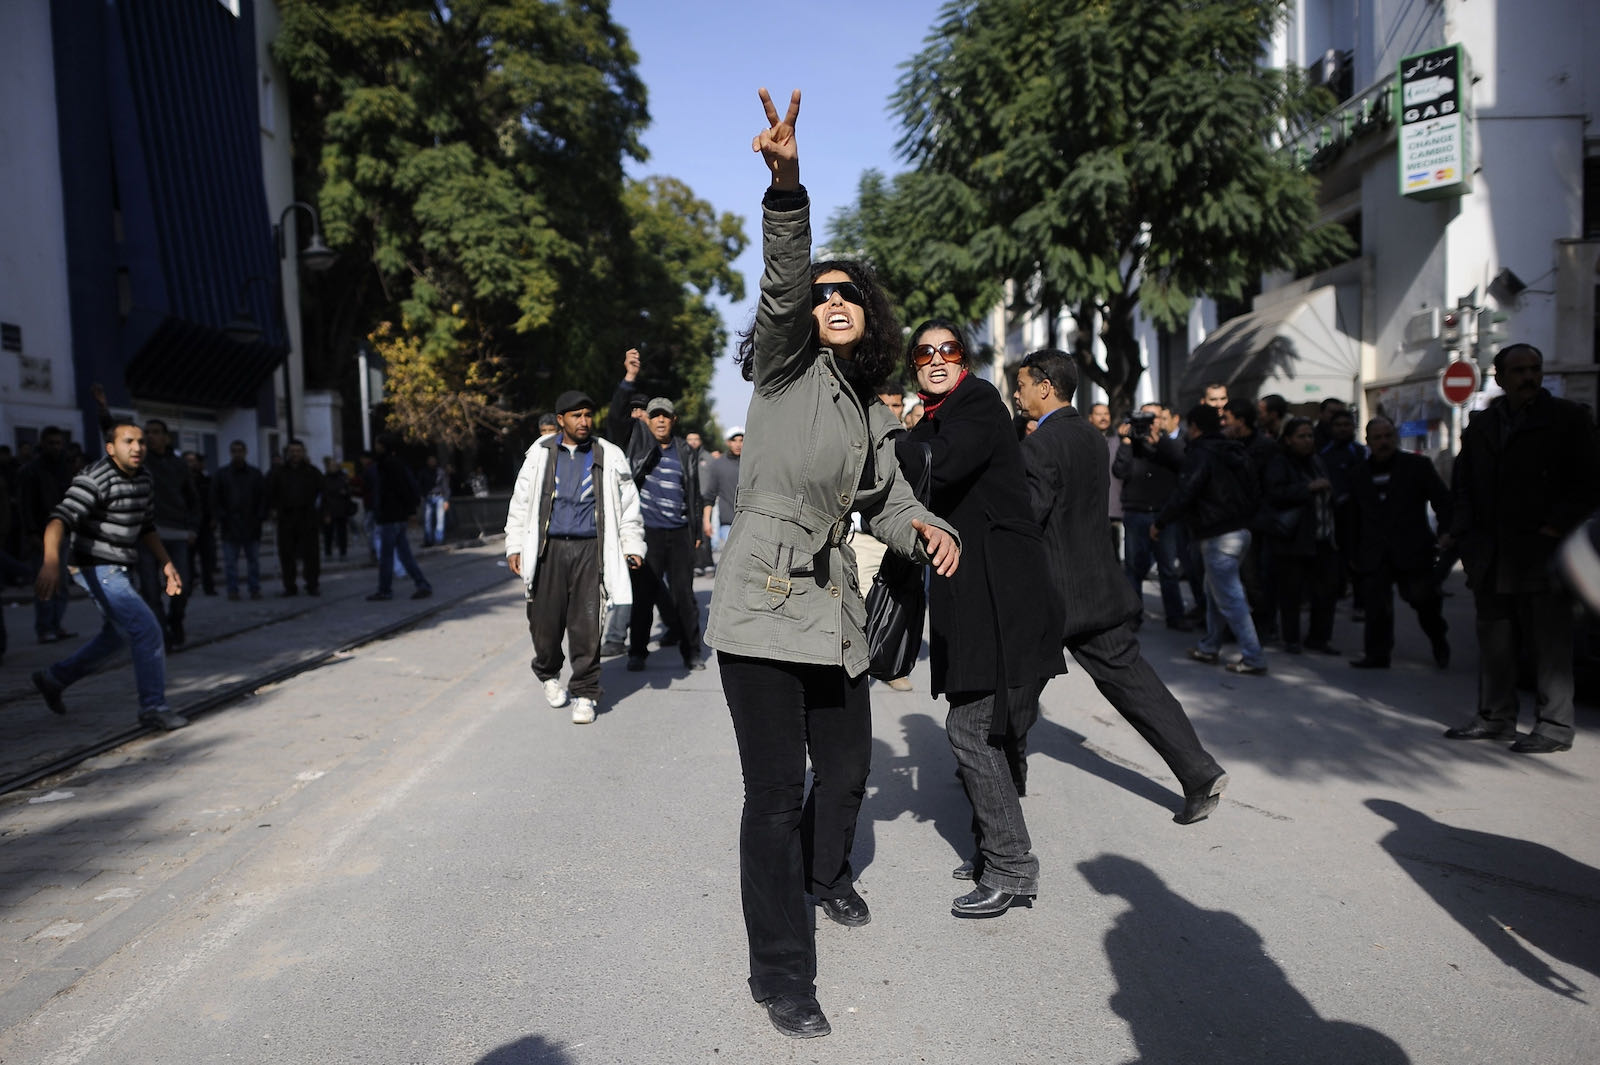 A Tunisian demonstrator gesturing